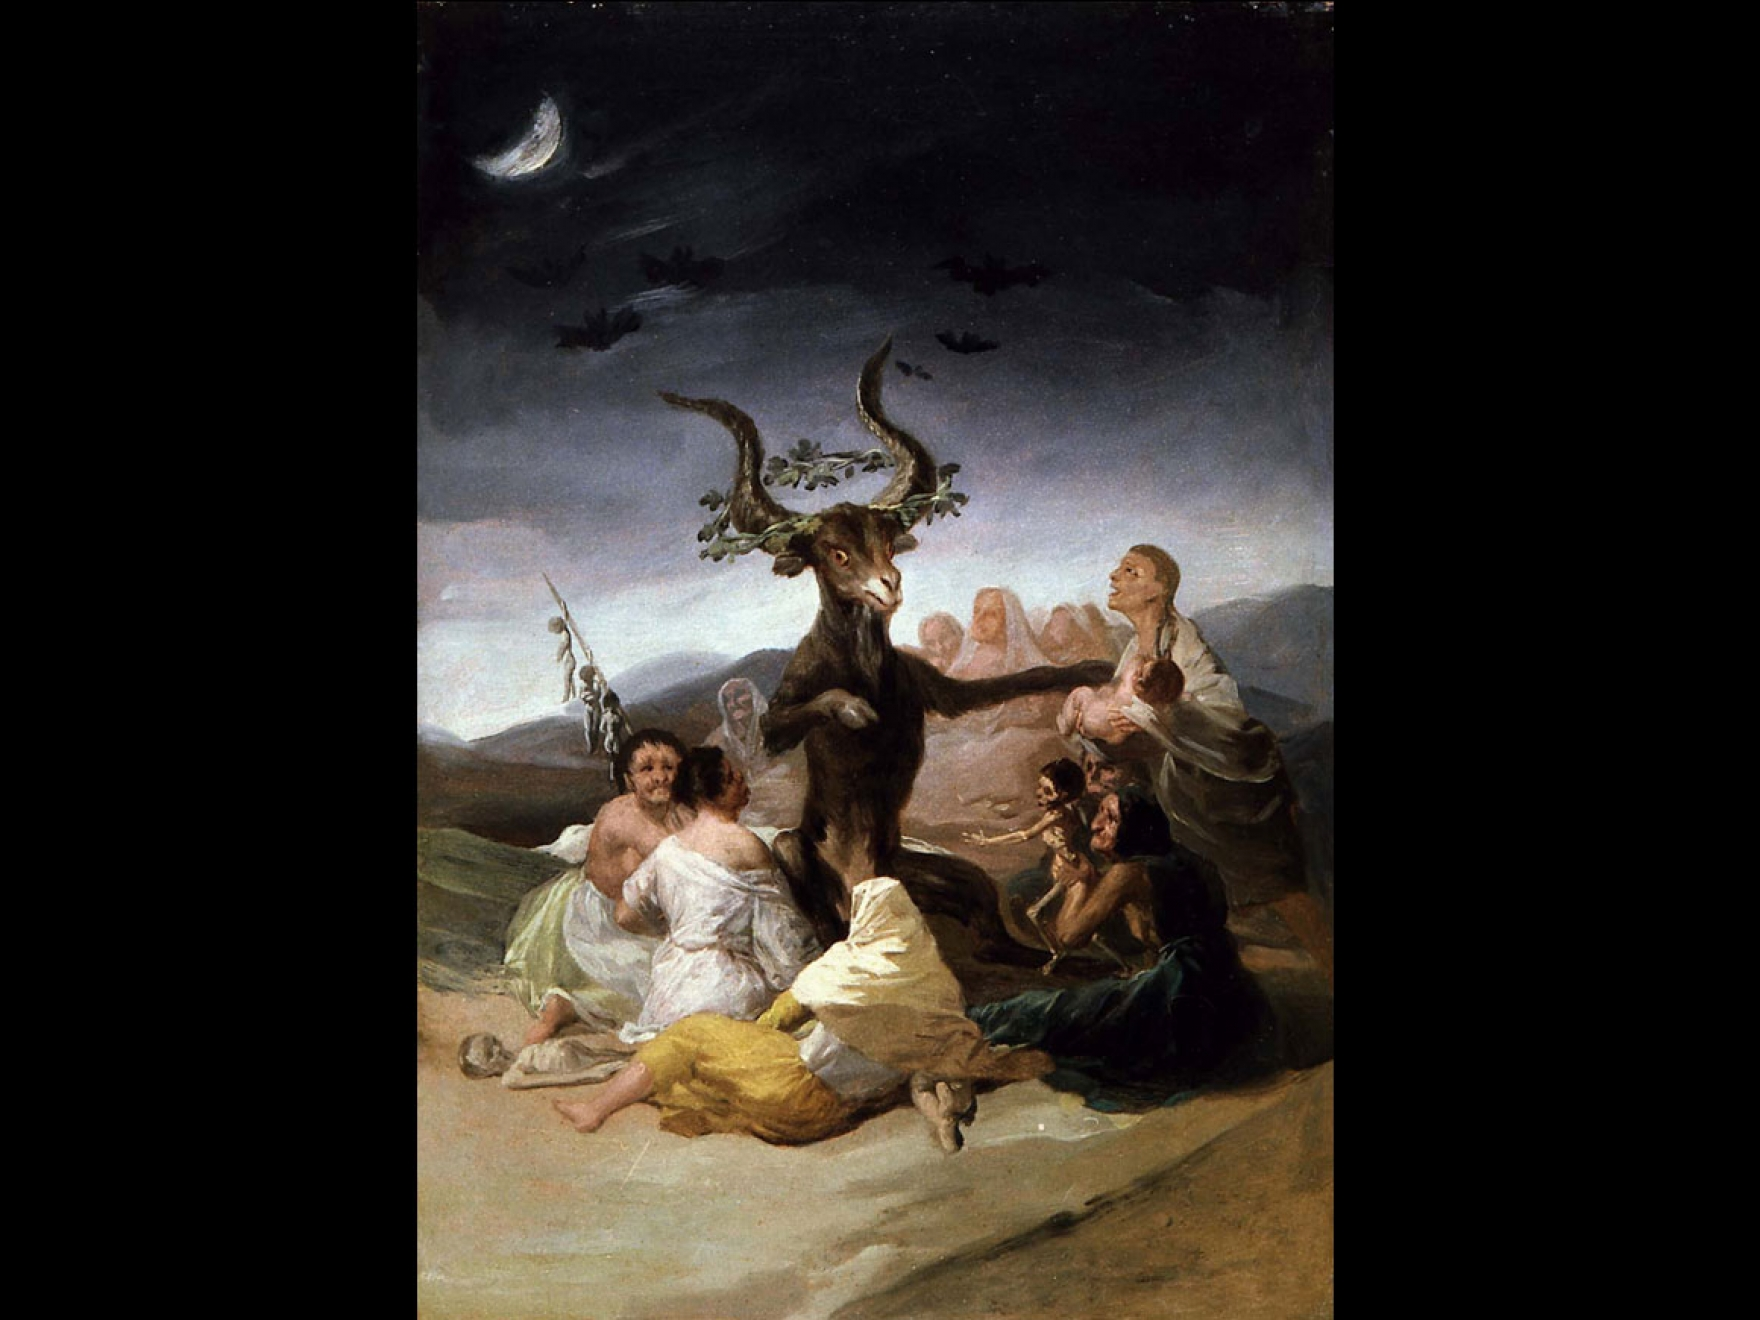 Painting of a goat depicting the devil, surrounded by witches